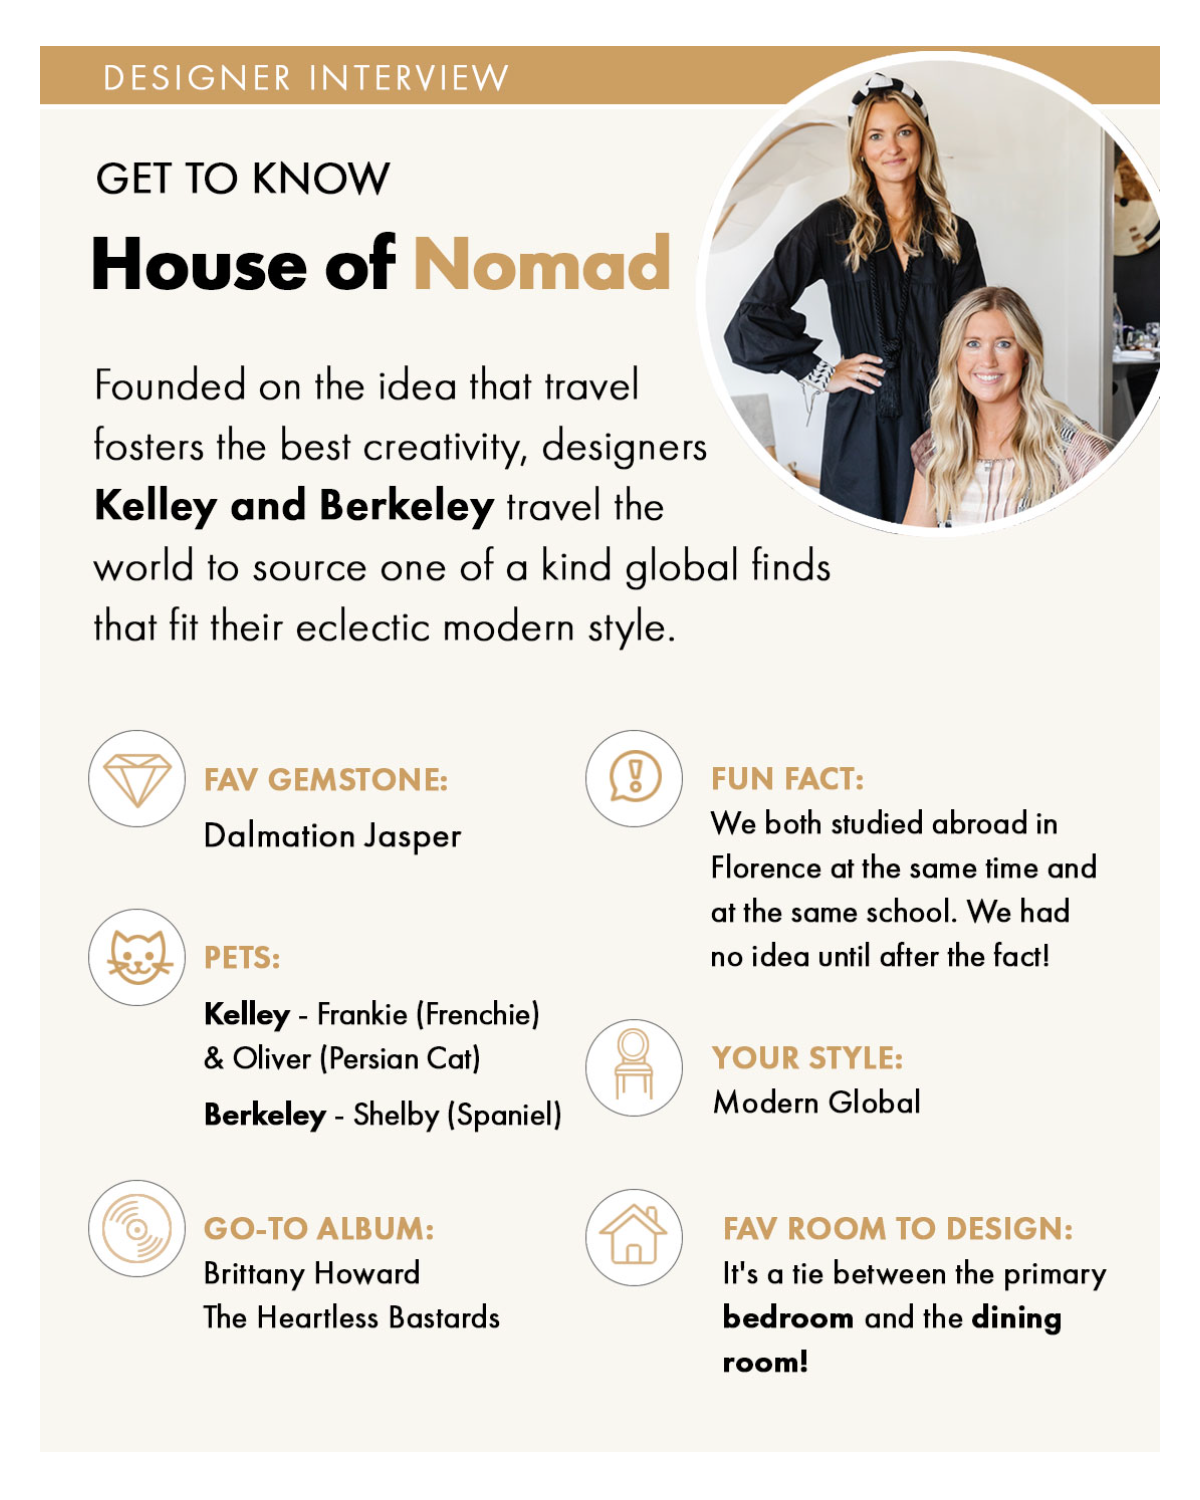 Get to Know House of Nomad